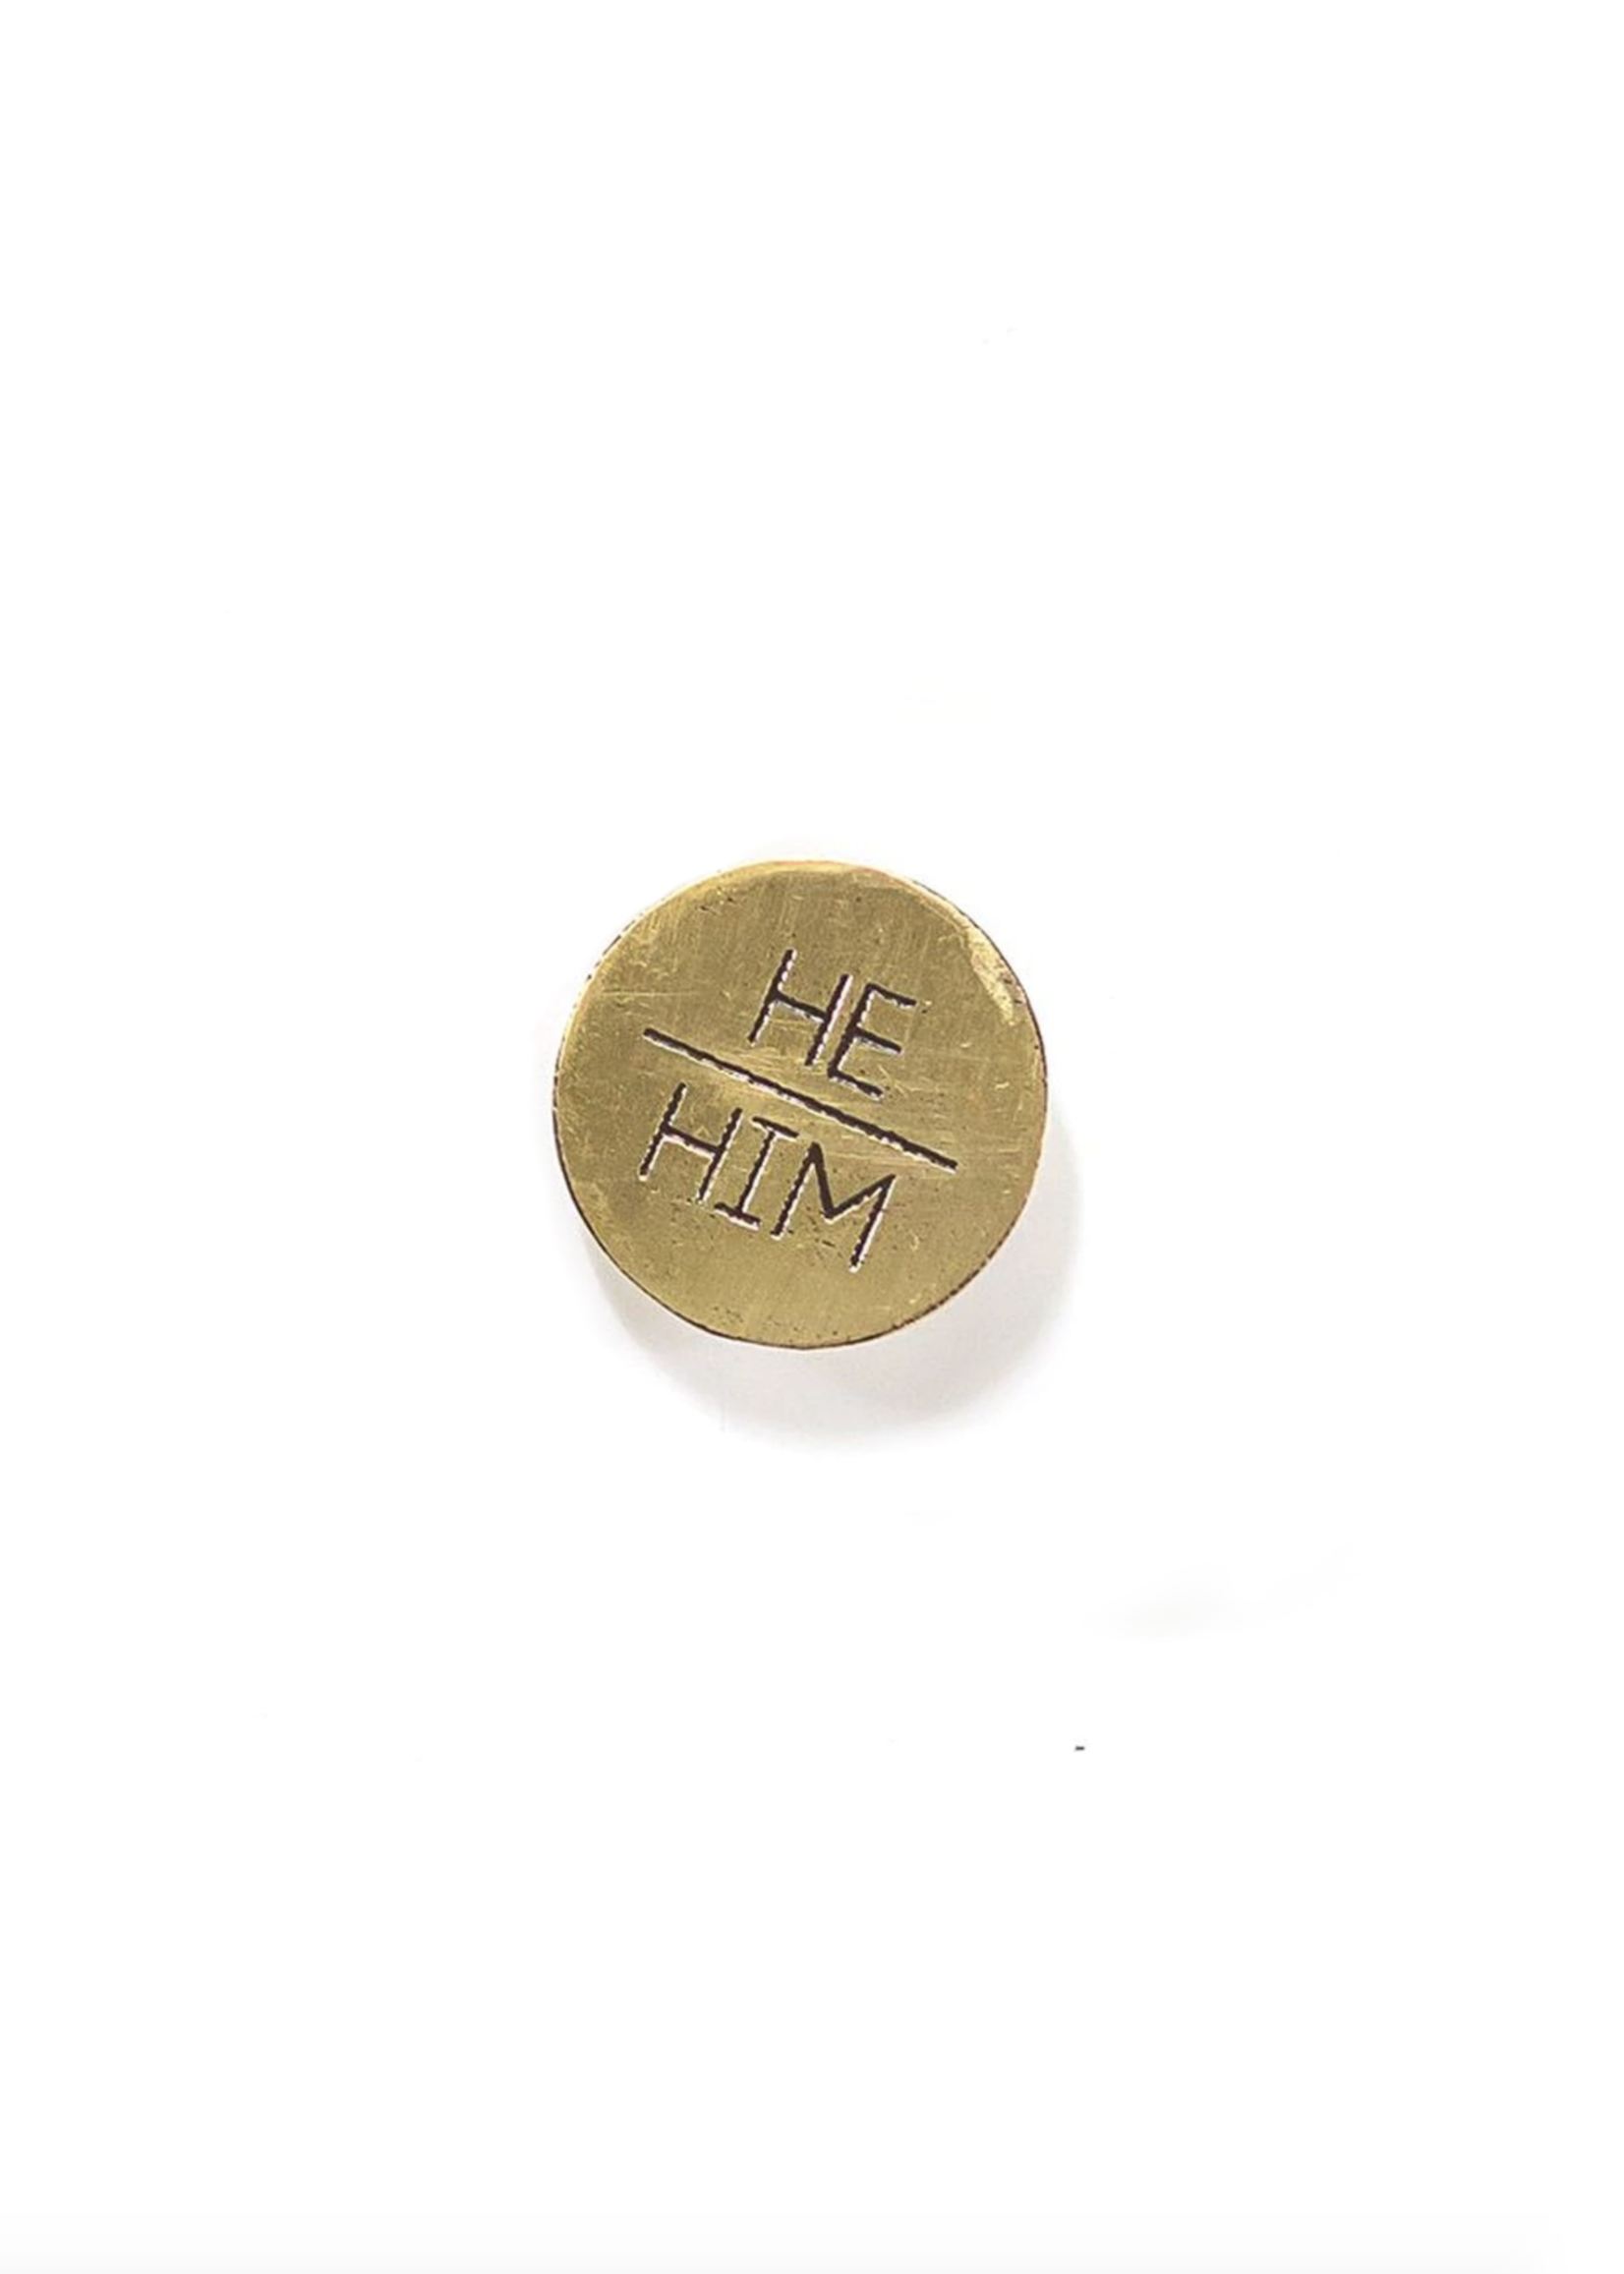 He/Him Pronouns Pin